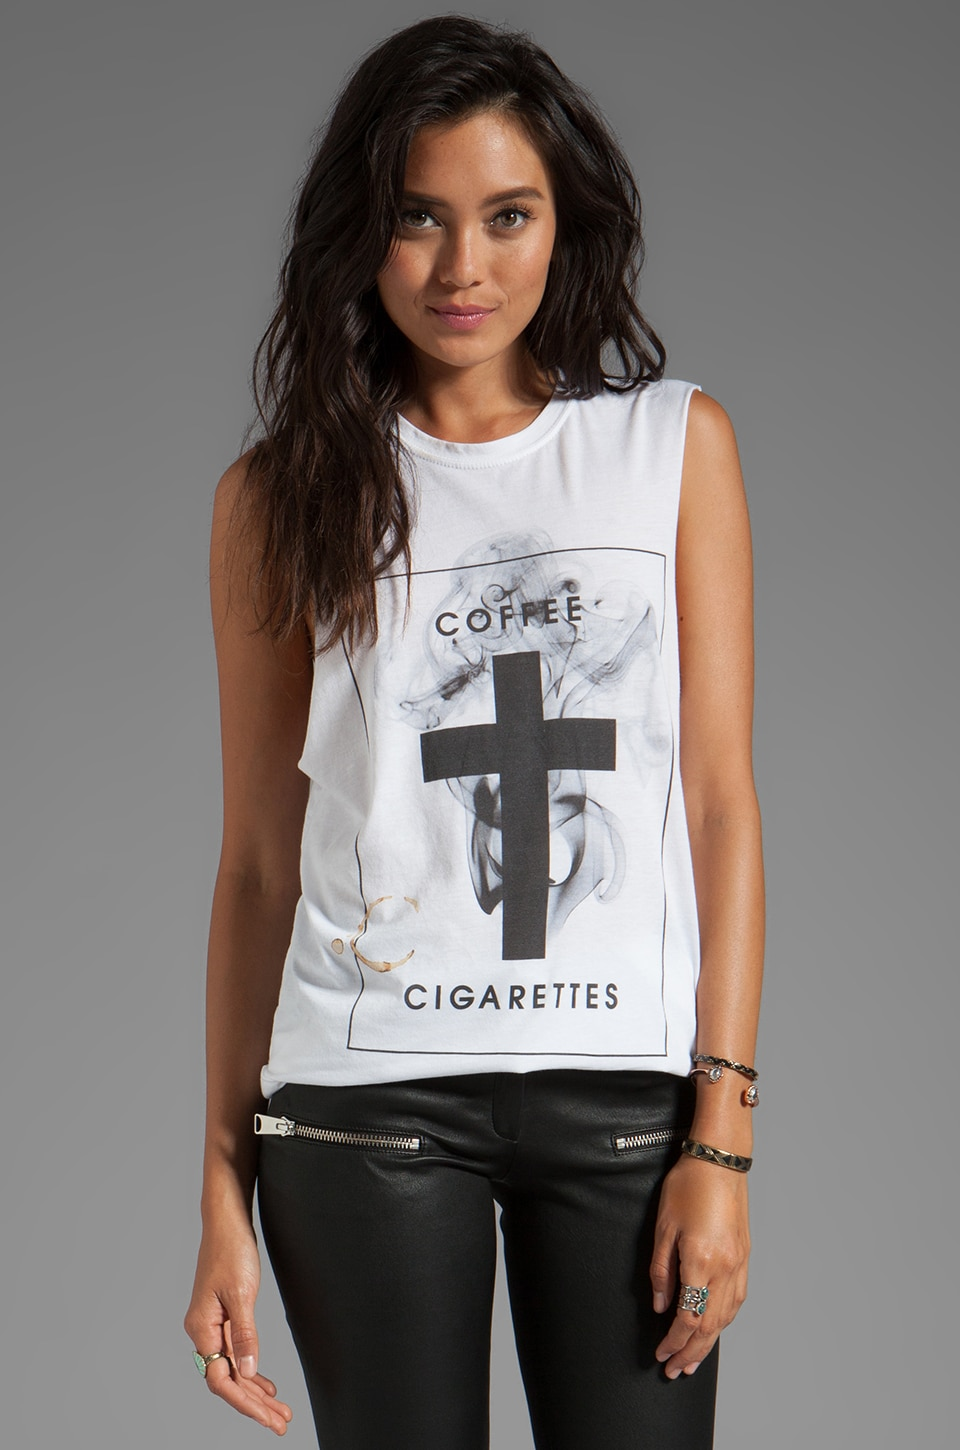 The Laundry Room Coffee + Cigarettes Muscle Tee in White